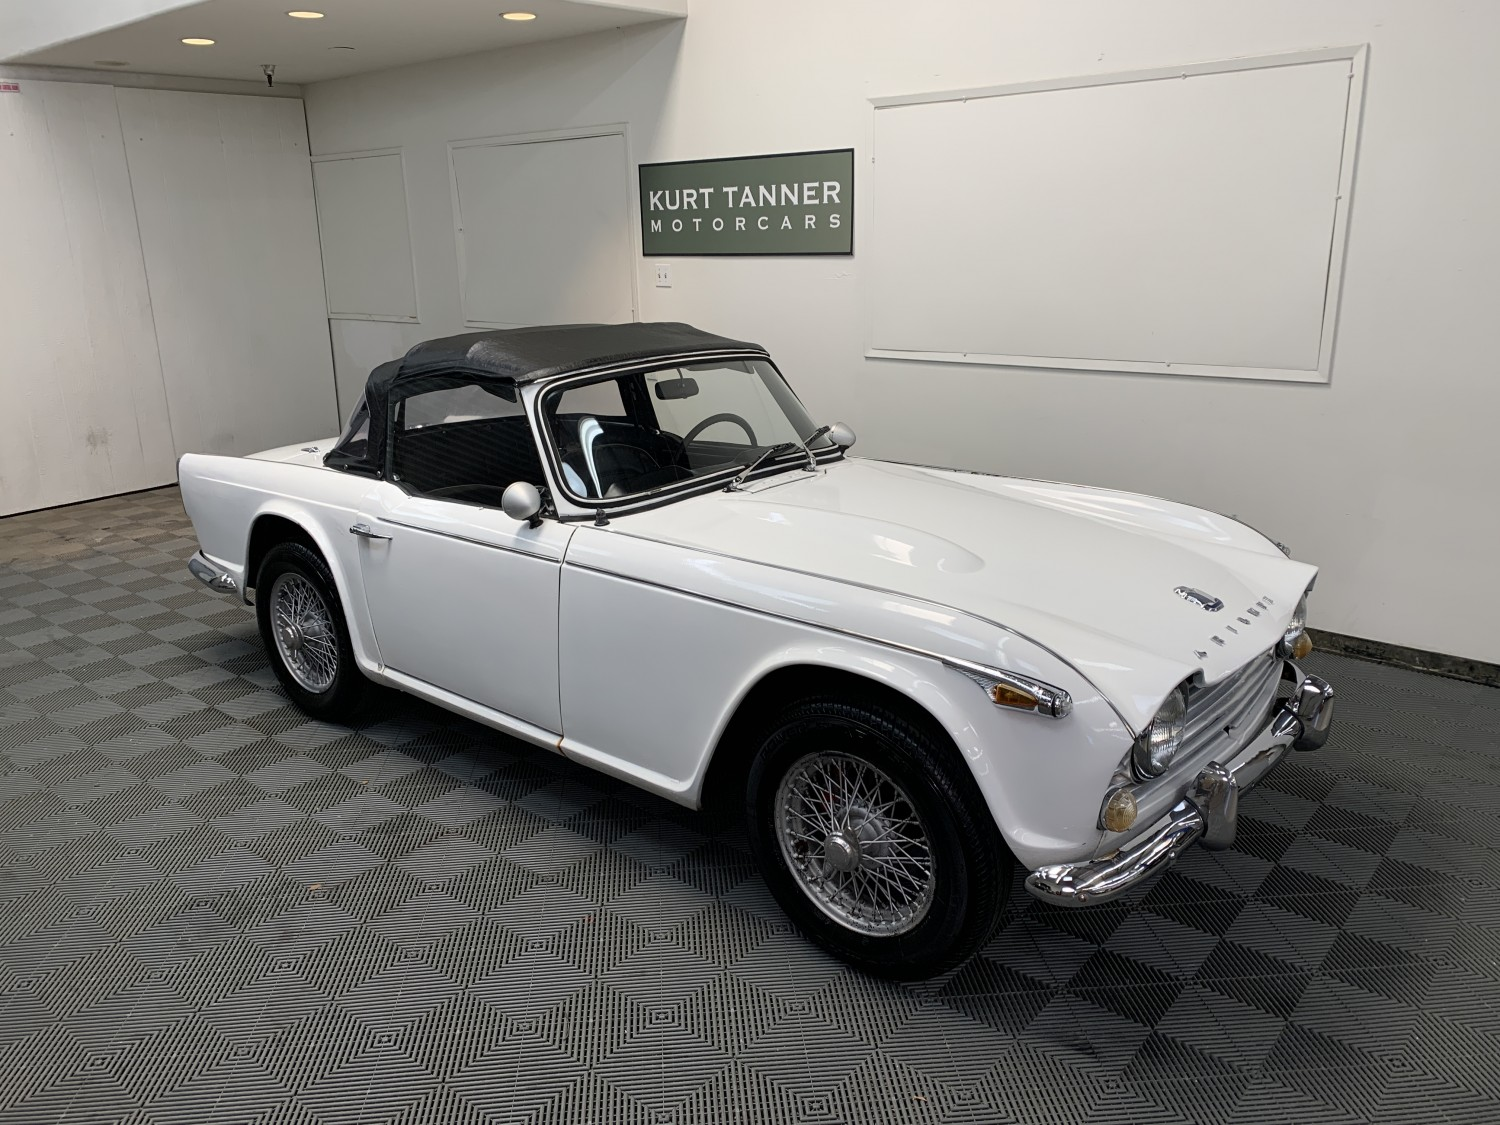 1967 TRIUMPH TR4A SPORTS CONVERTIBLE. SOLID AXLE. WHITE WITH BLACK TRIM AND WEATHER EQUIPMENT. 4-SPEED, 60-SPOKE PAINTED WIRE WHEELS. GOOD DRIVER.